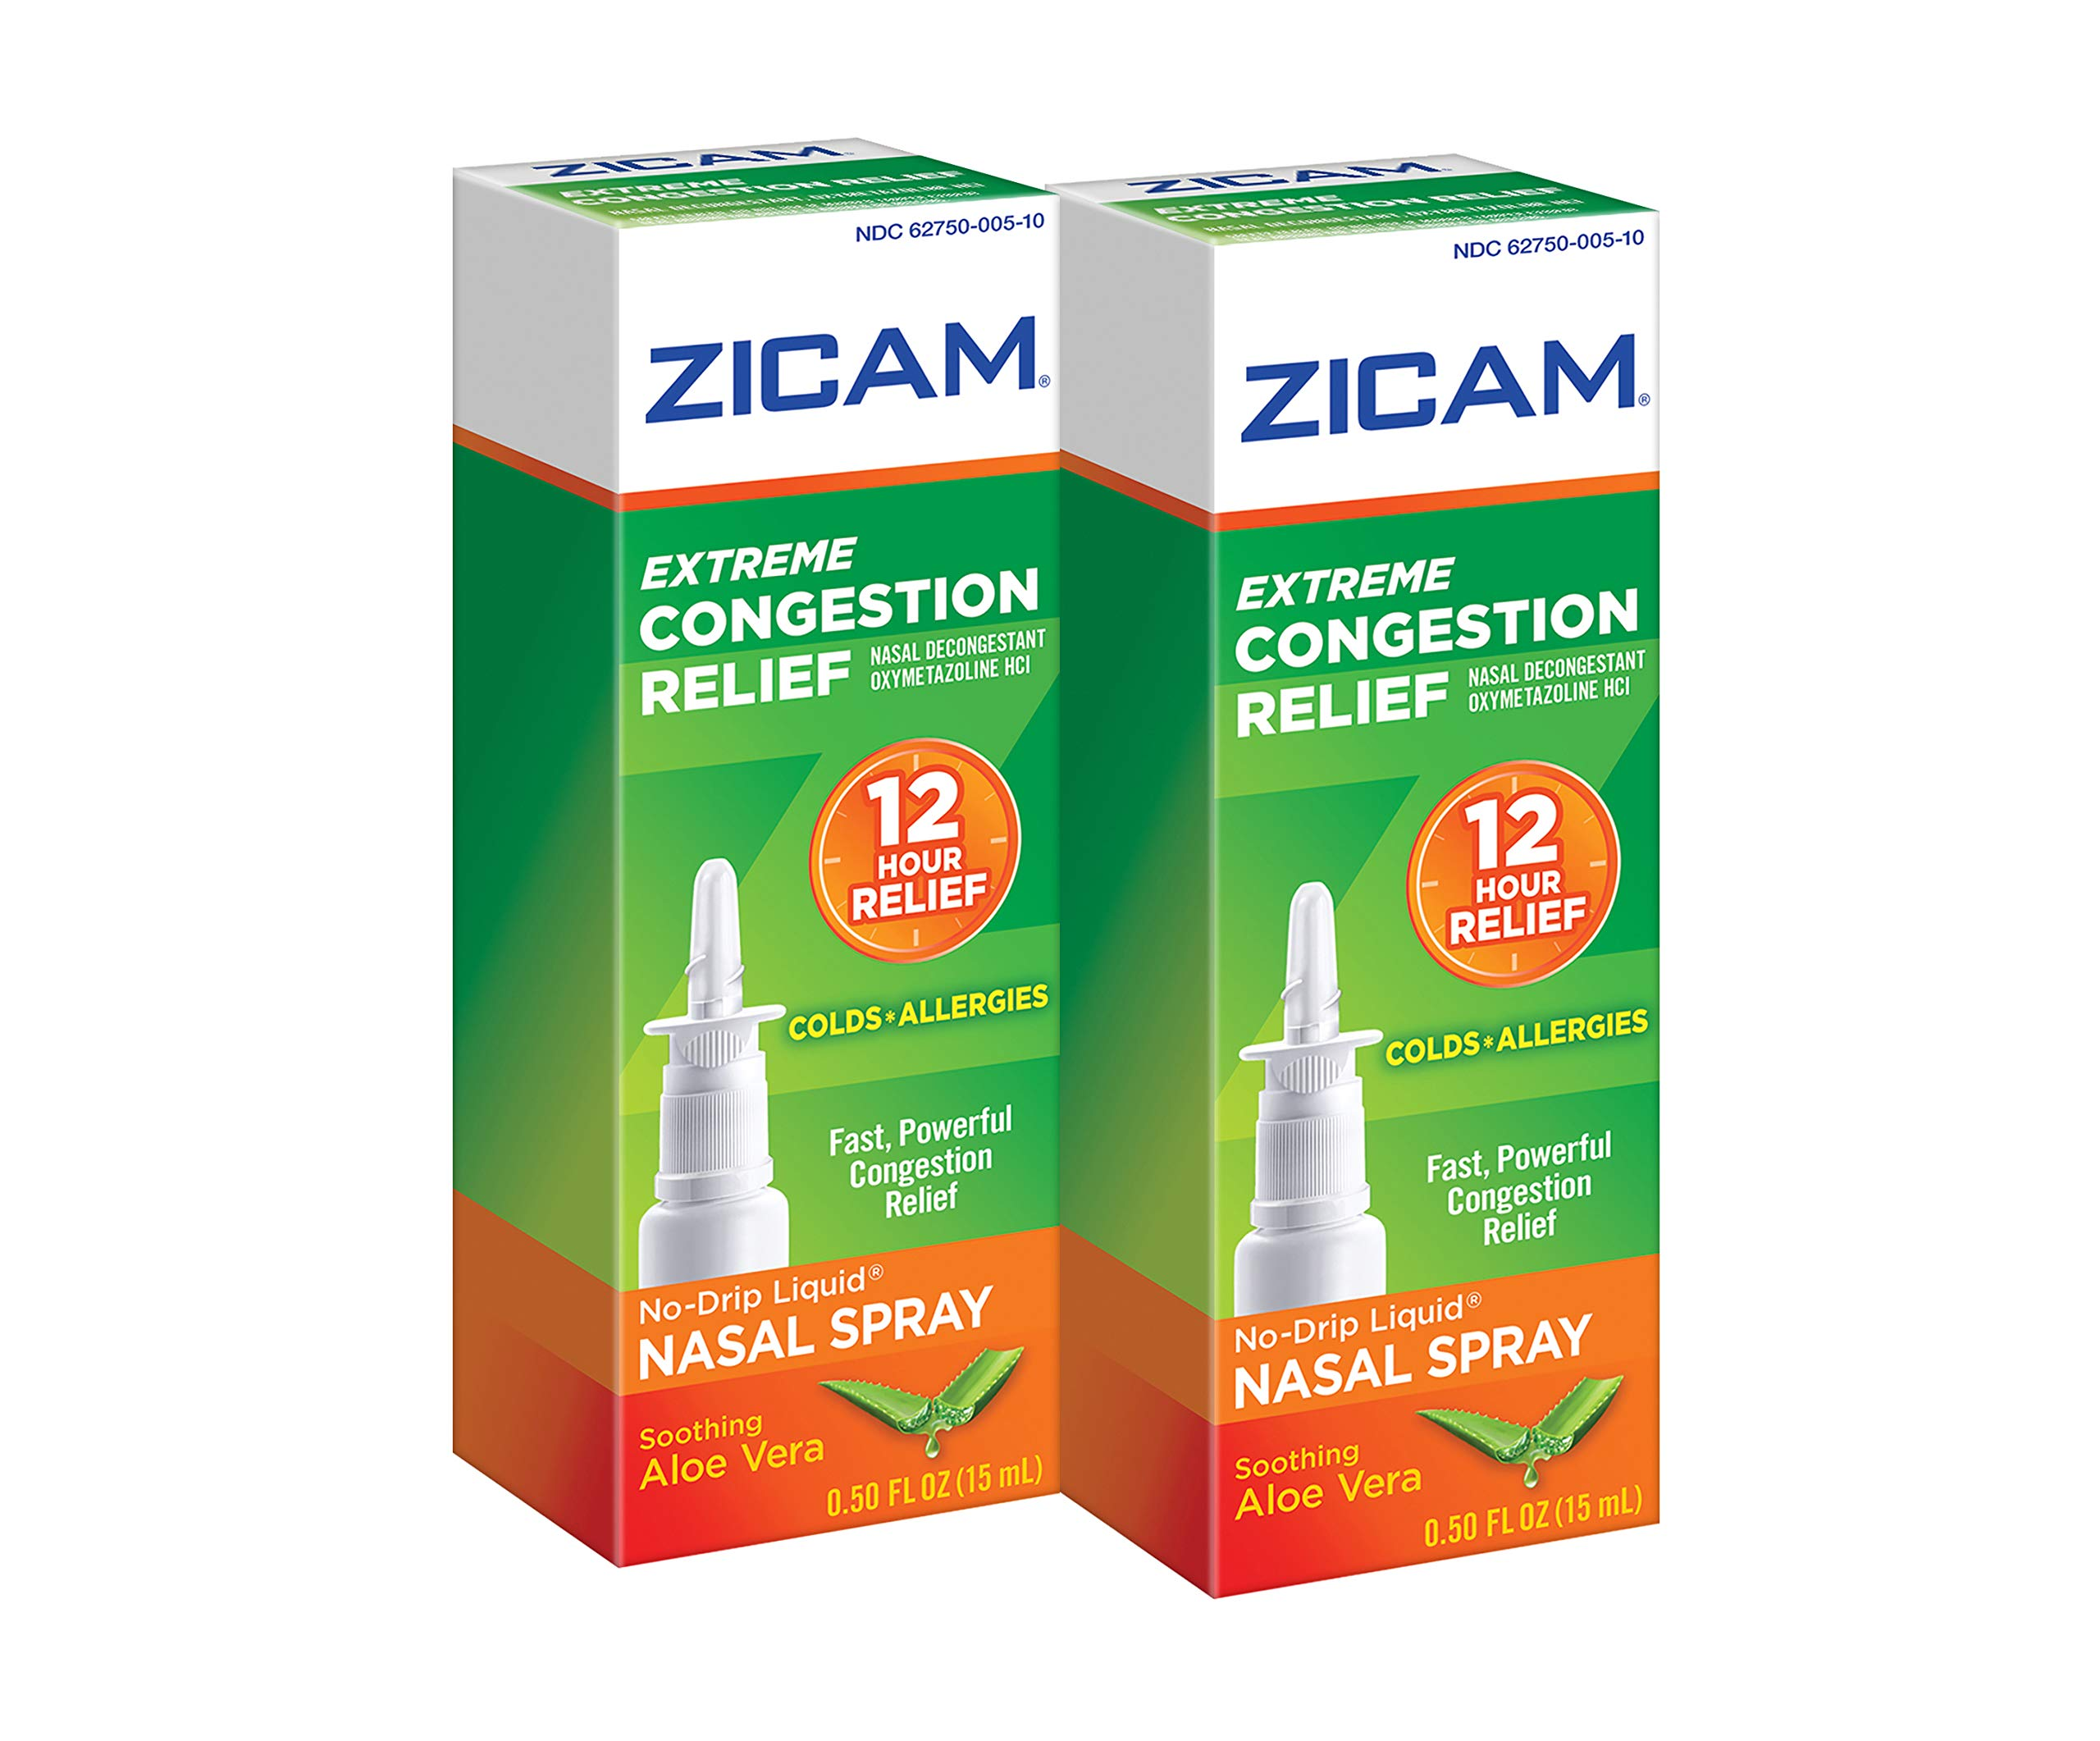 Zicam Extreme Congestion Relief Nasal Spray, 0.5oz. Bottles (Pack of 2), Fast Powerful Relief for Nasal Congestion from Colds or Allergies by Zicam